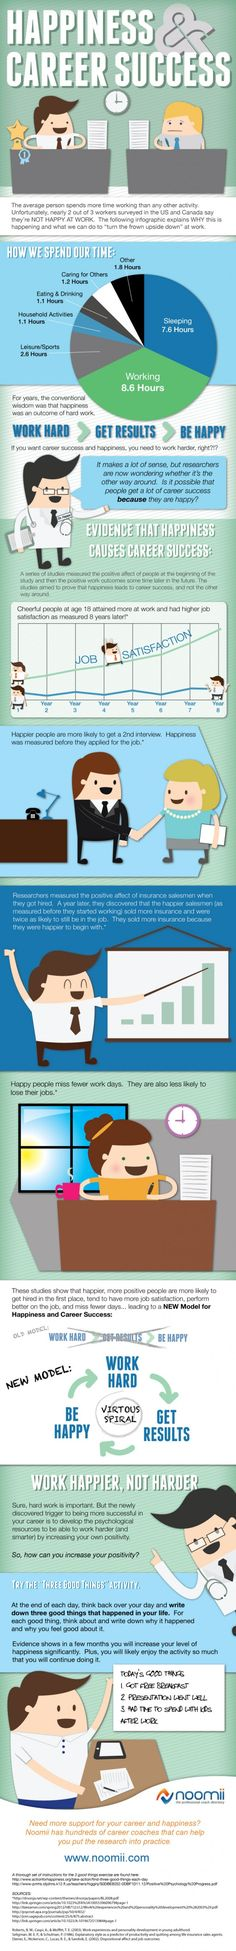 Happiness And #Career #Success [#Infographic]